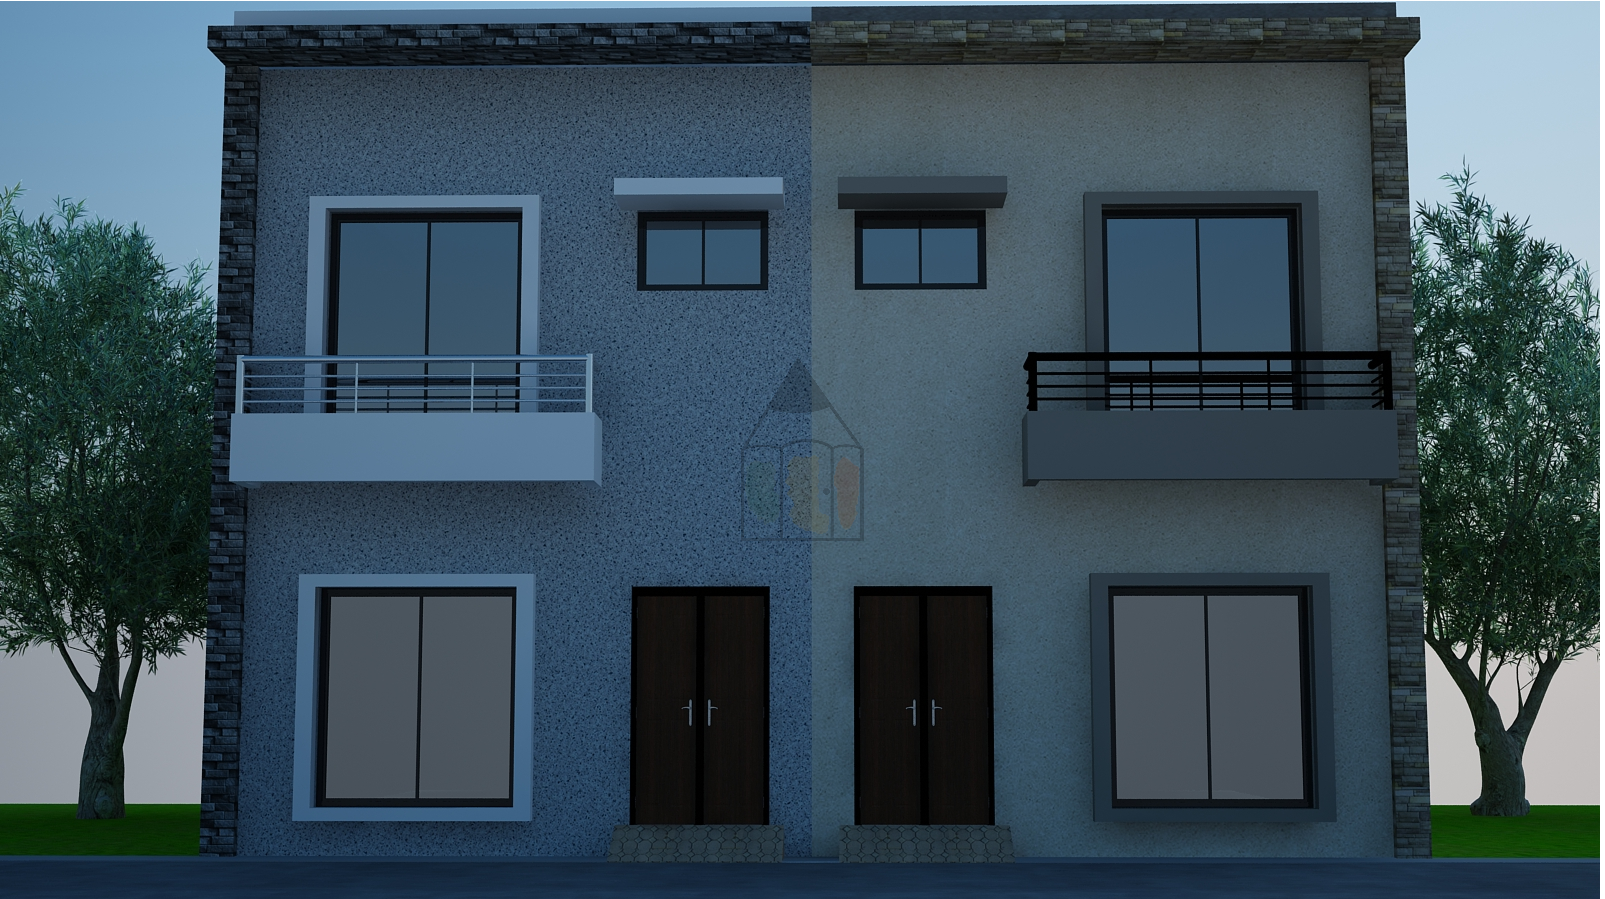 3 marla house design for the dimensions which are very popular in pakistan especially lahore the front of this 3 marla house design is 18 ft and depth is